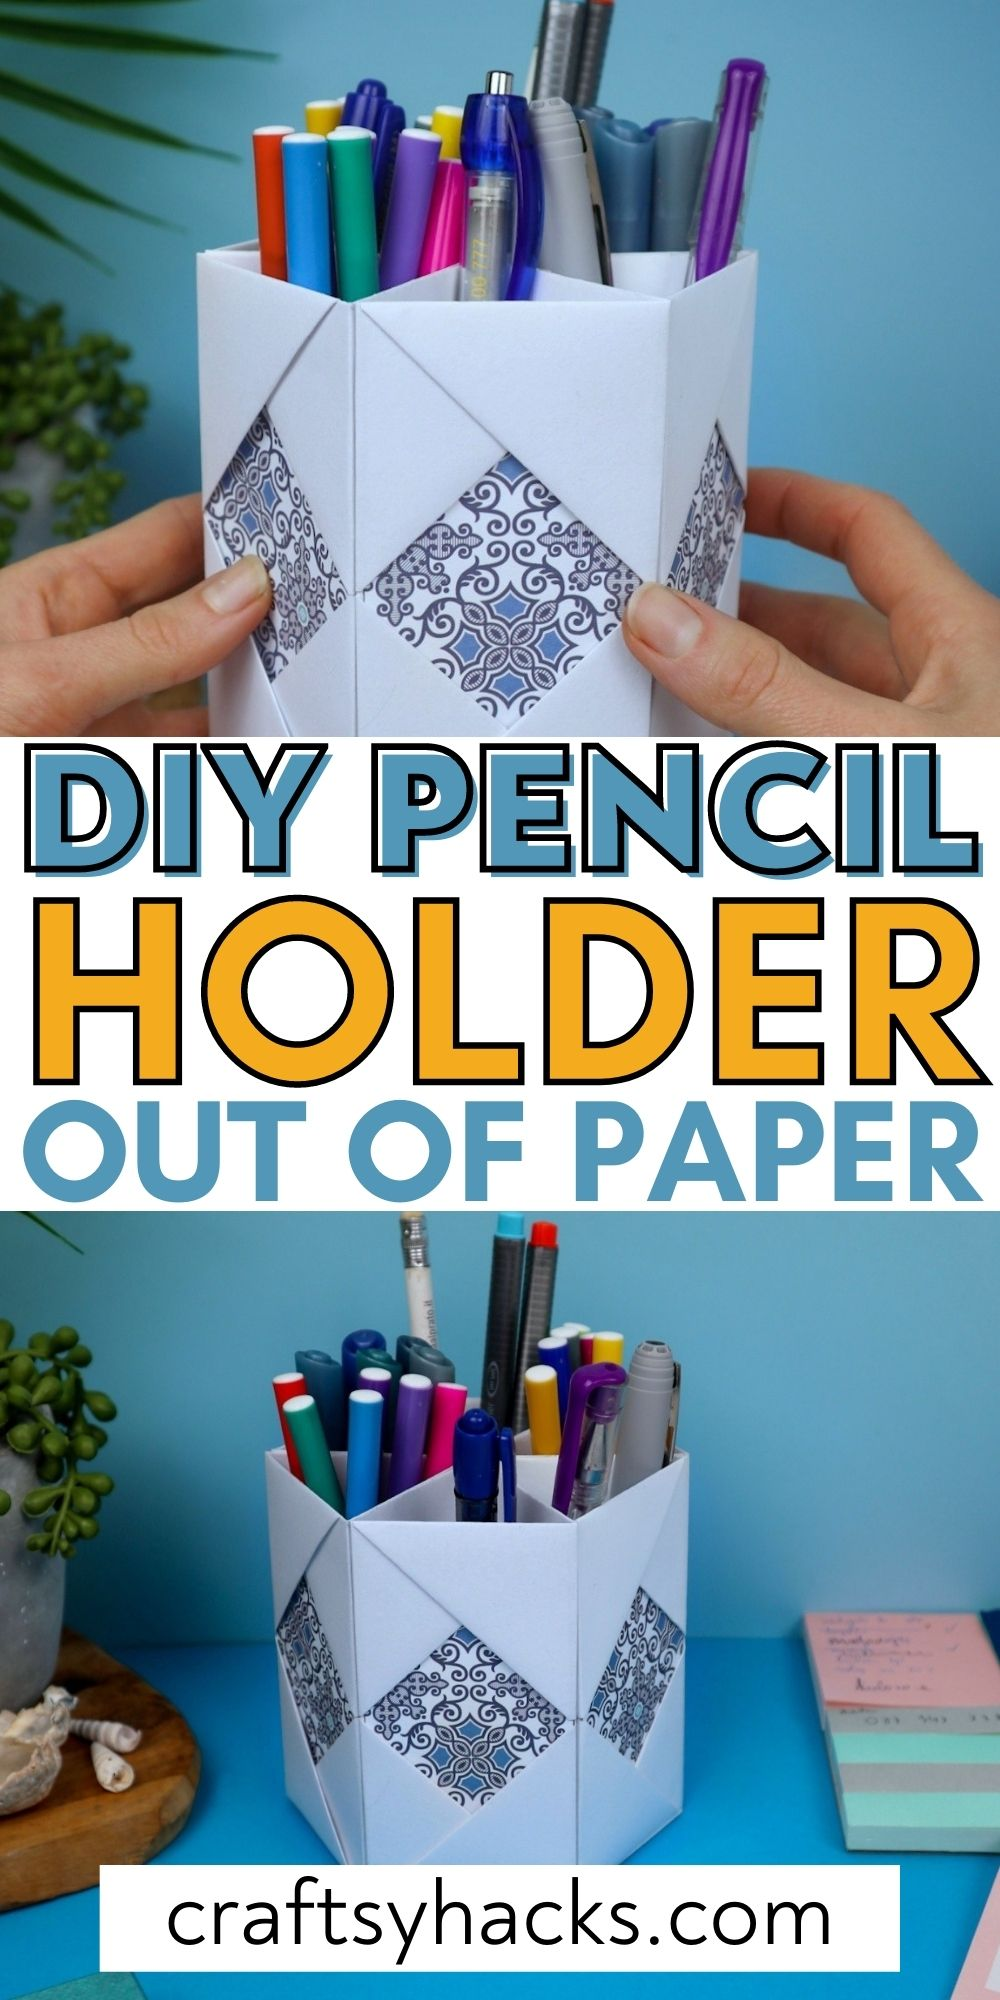 diy pencil holder out of paper